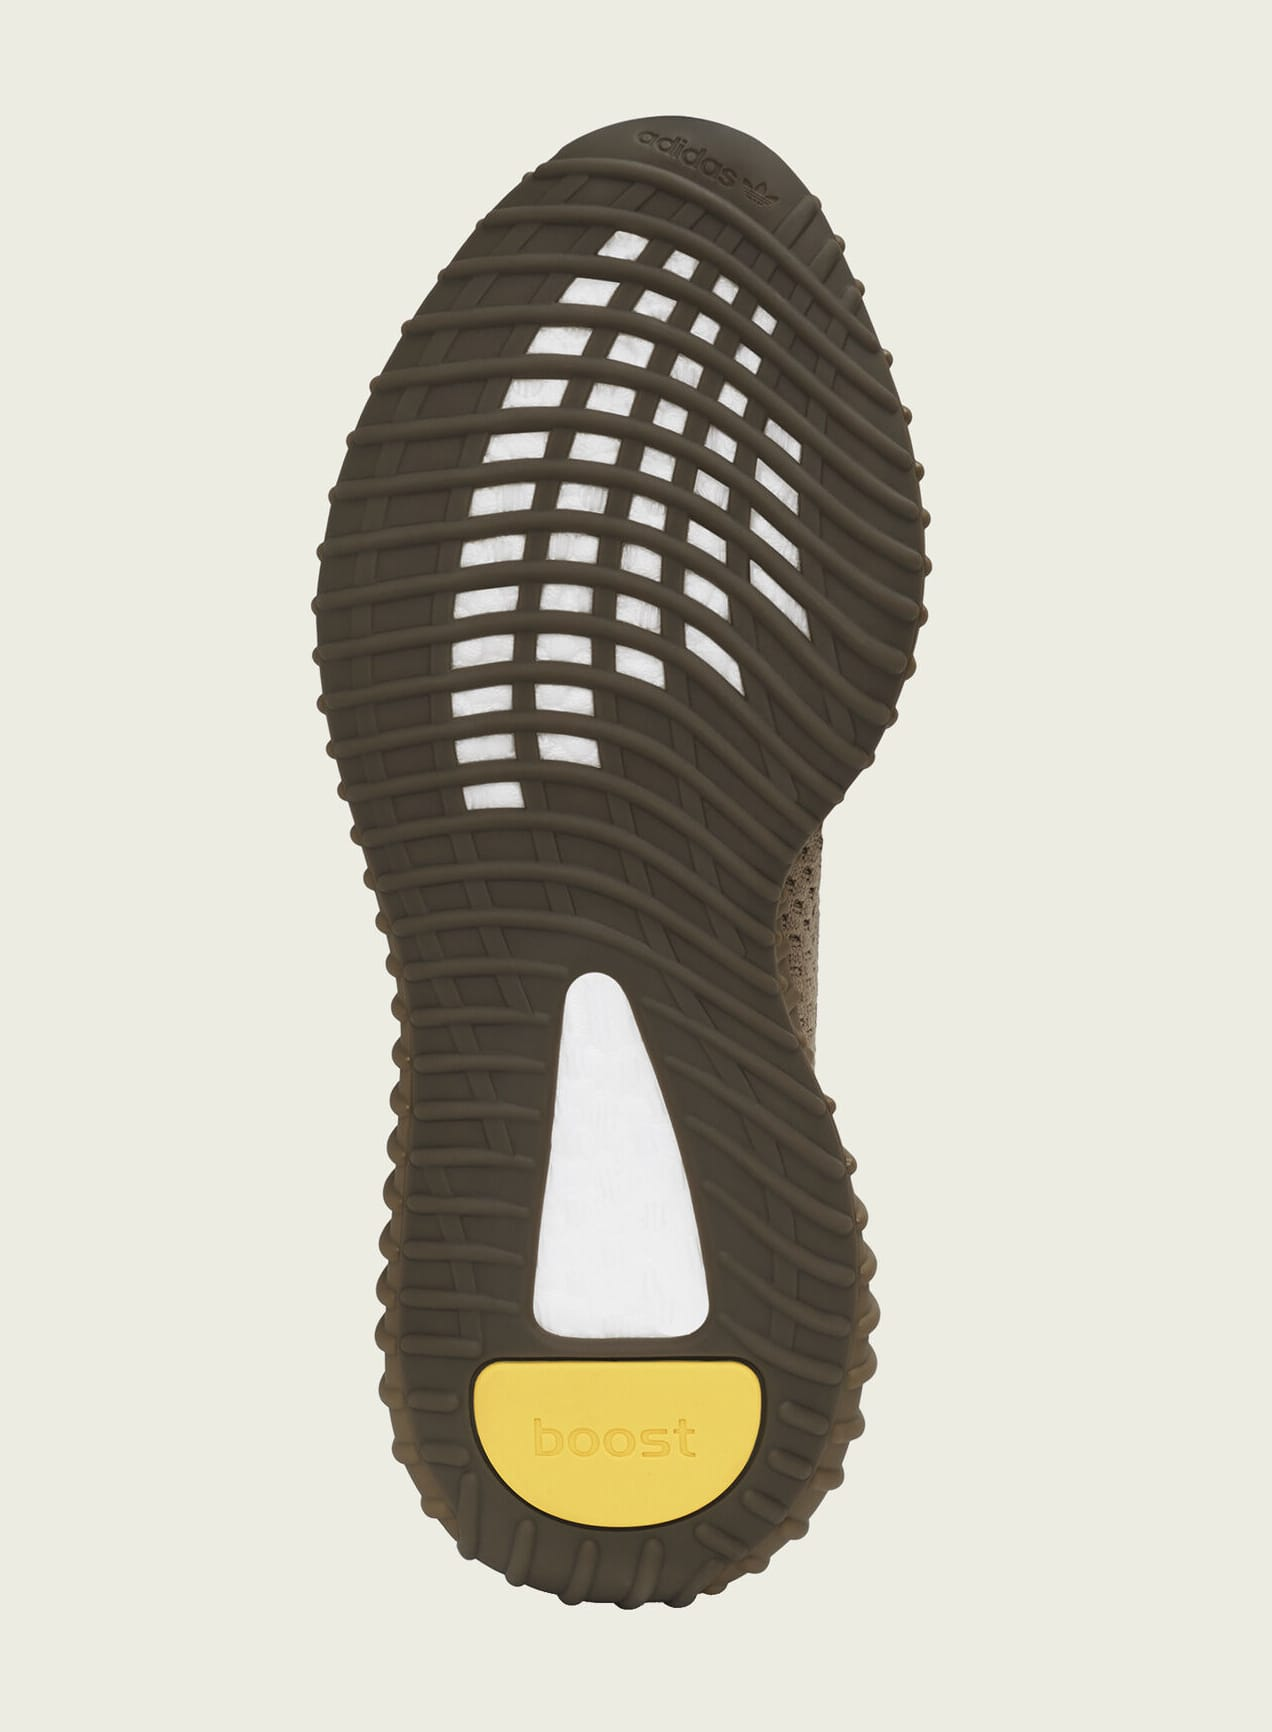 adidas-yeezy-boost-350-v2-earth-fx9033-outsole